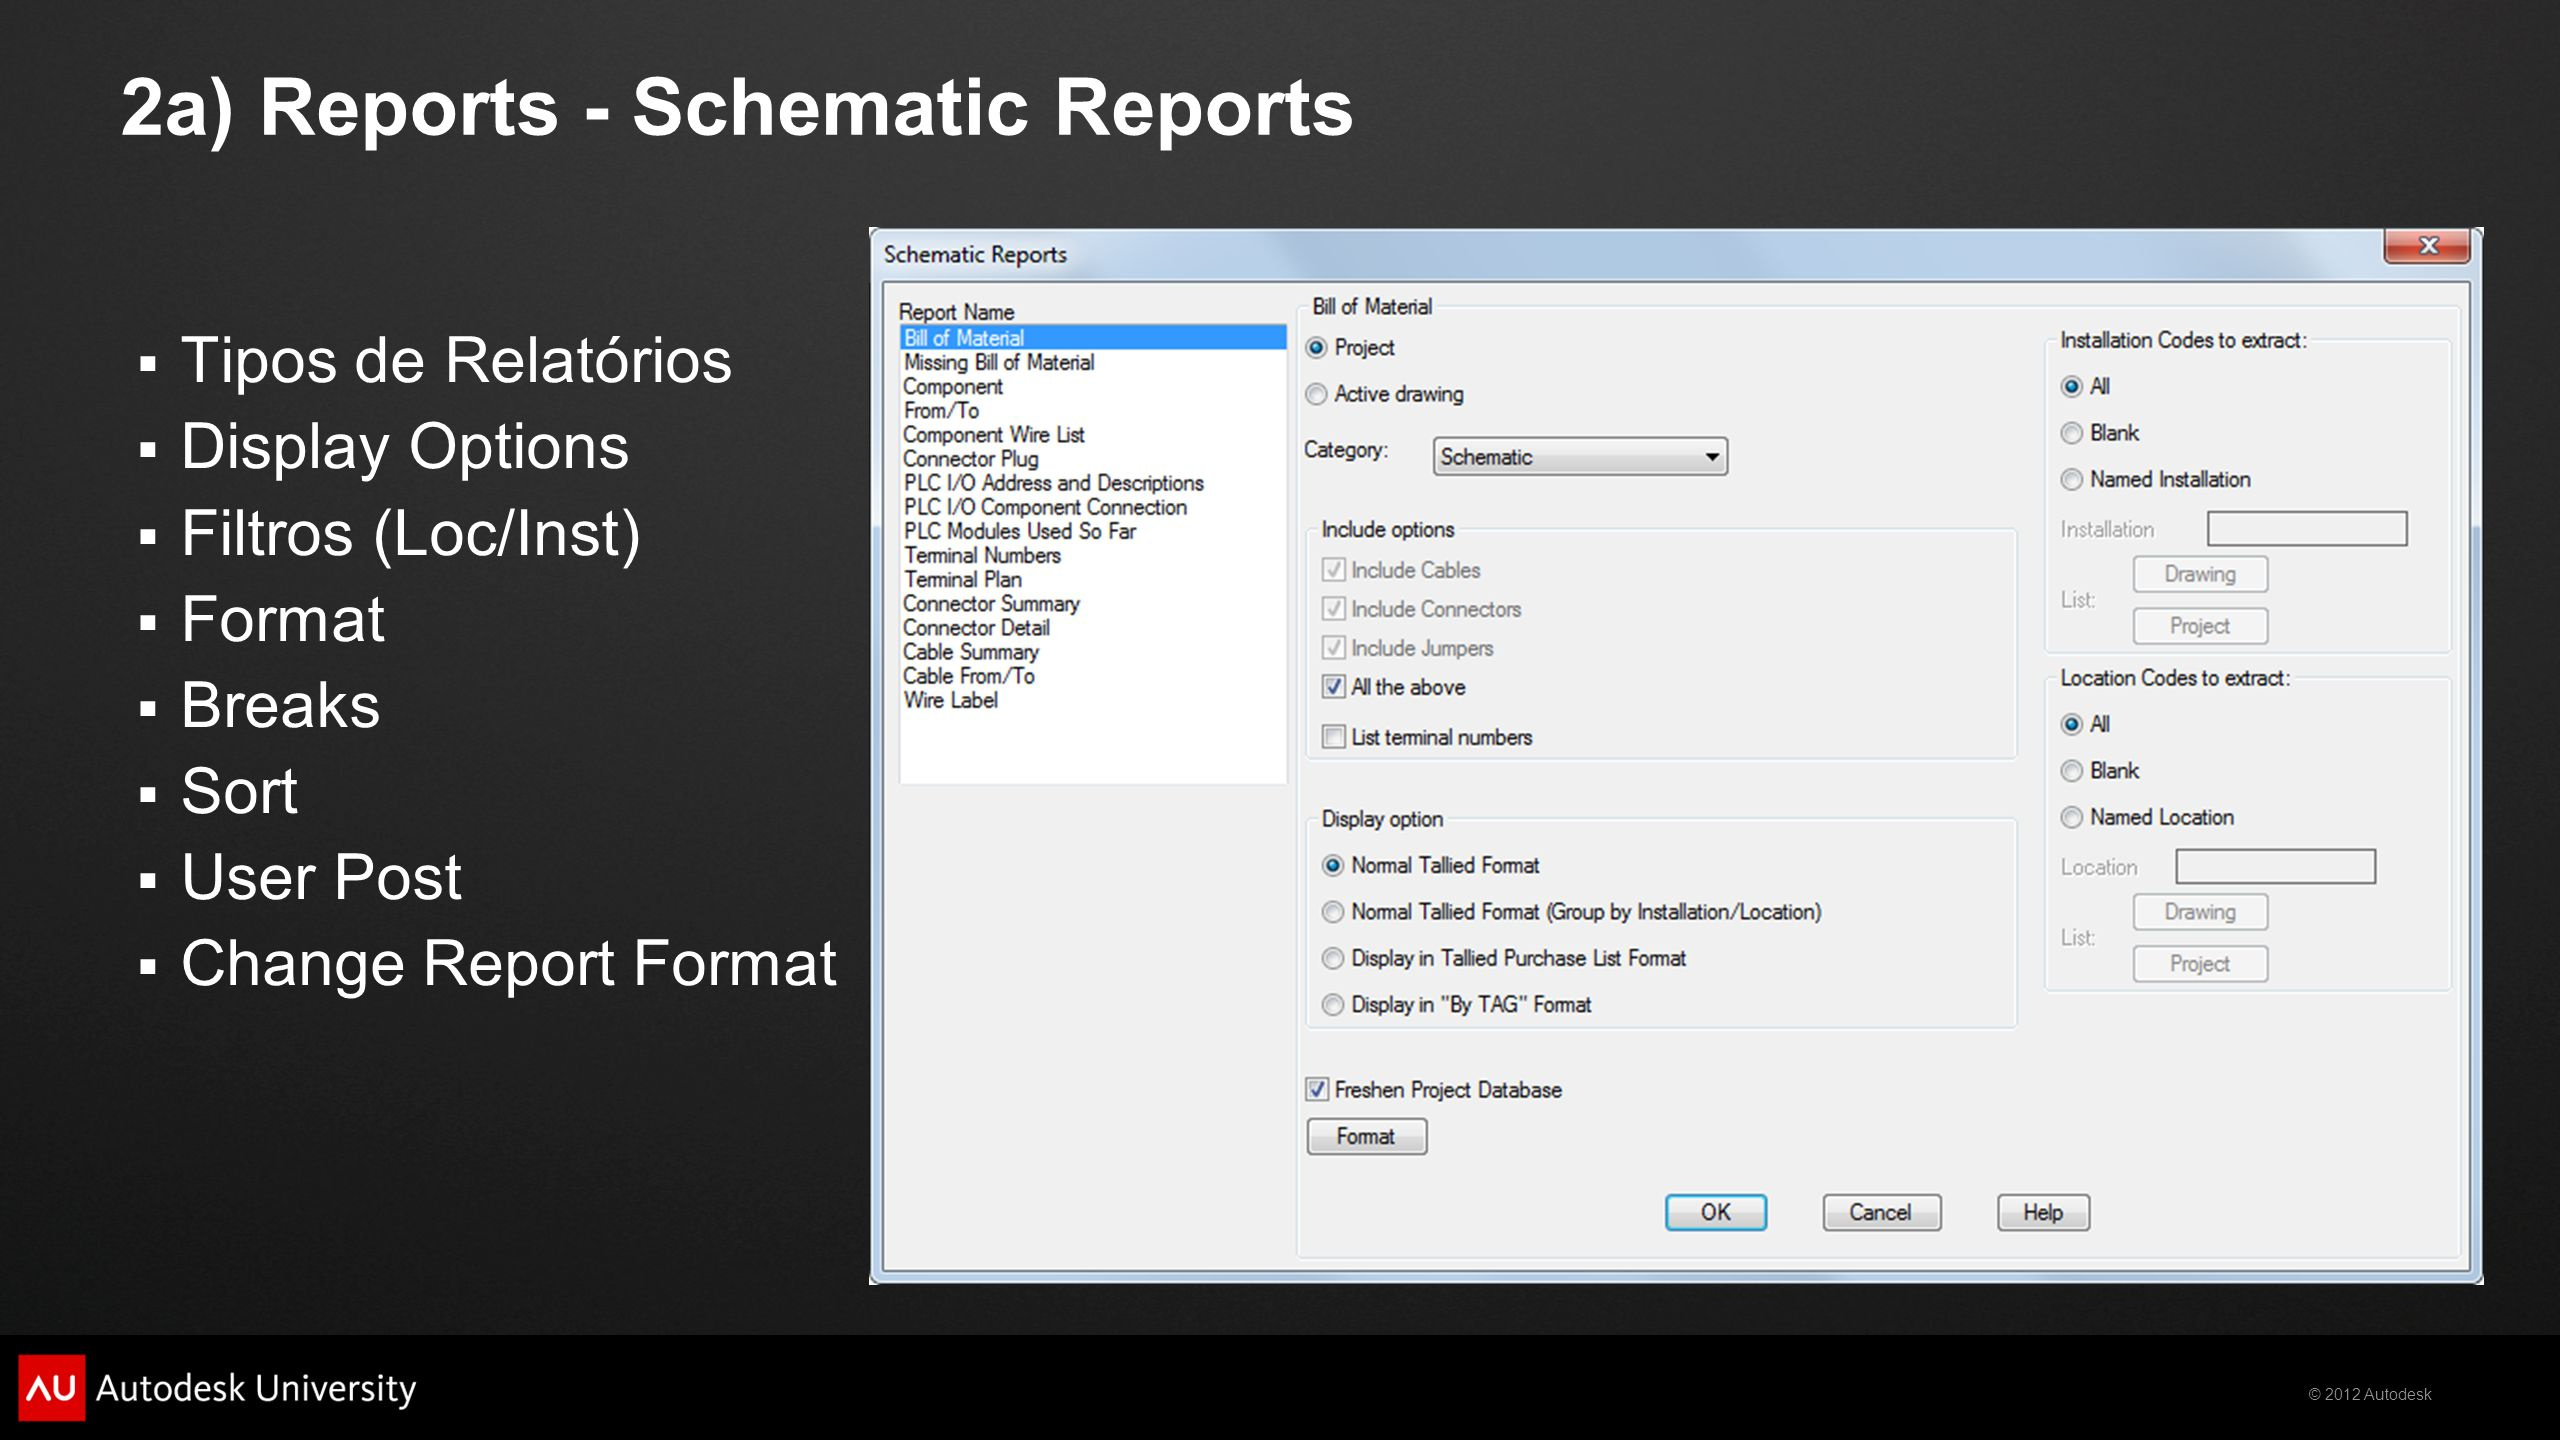 2a) Reports - Schematic Reports